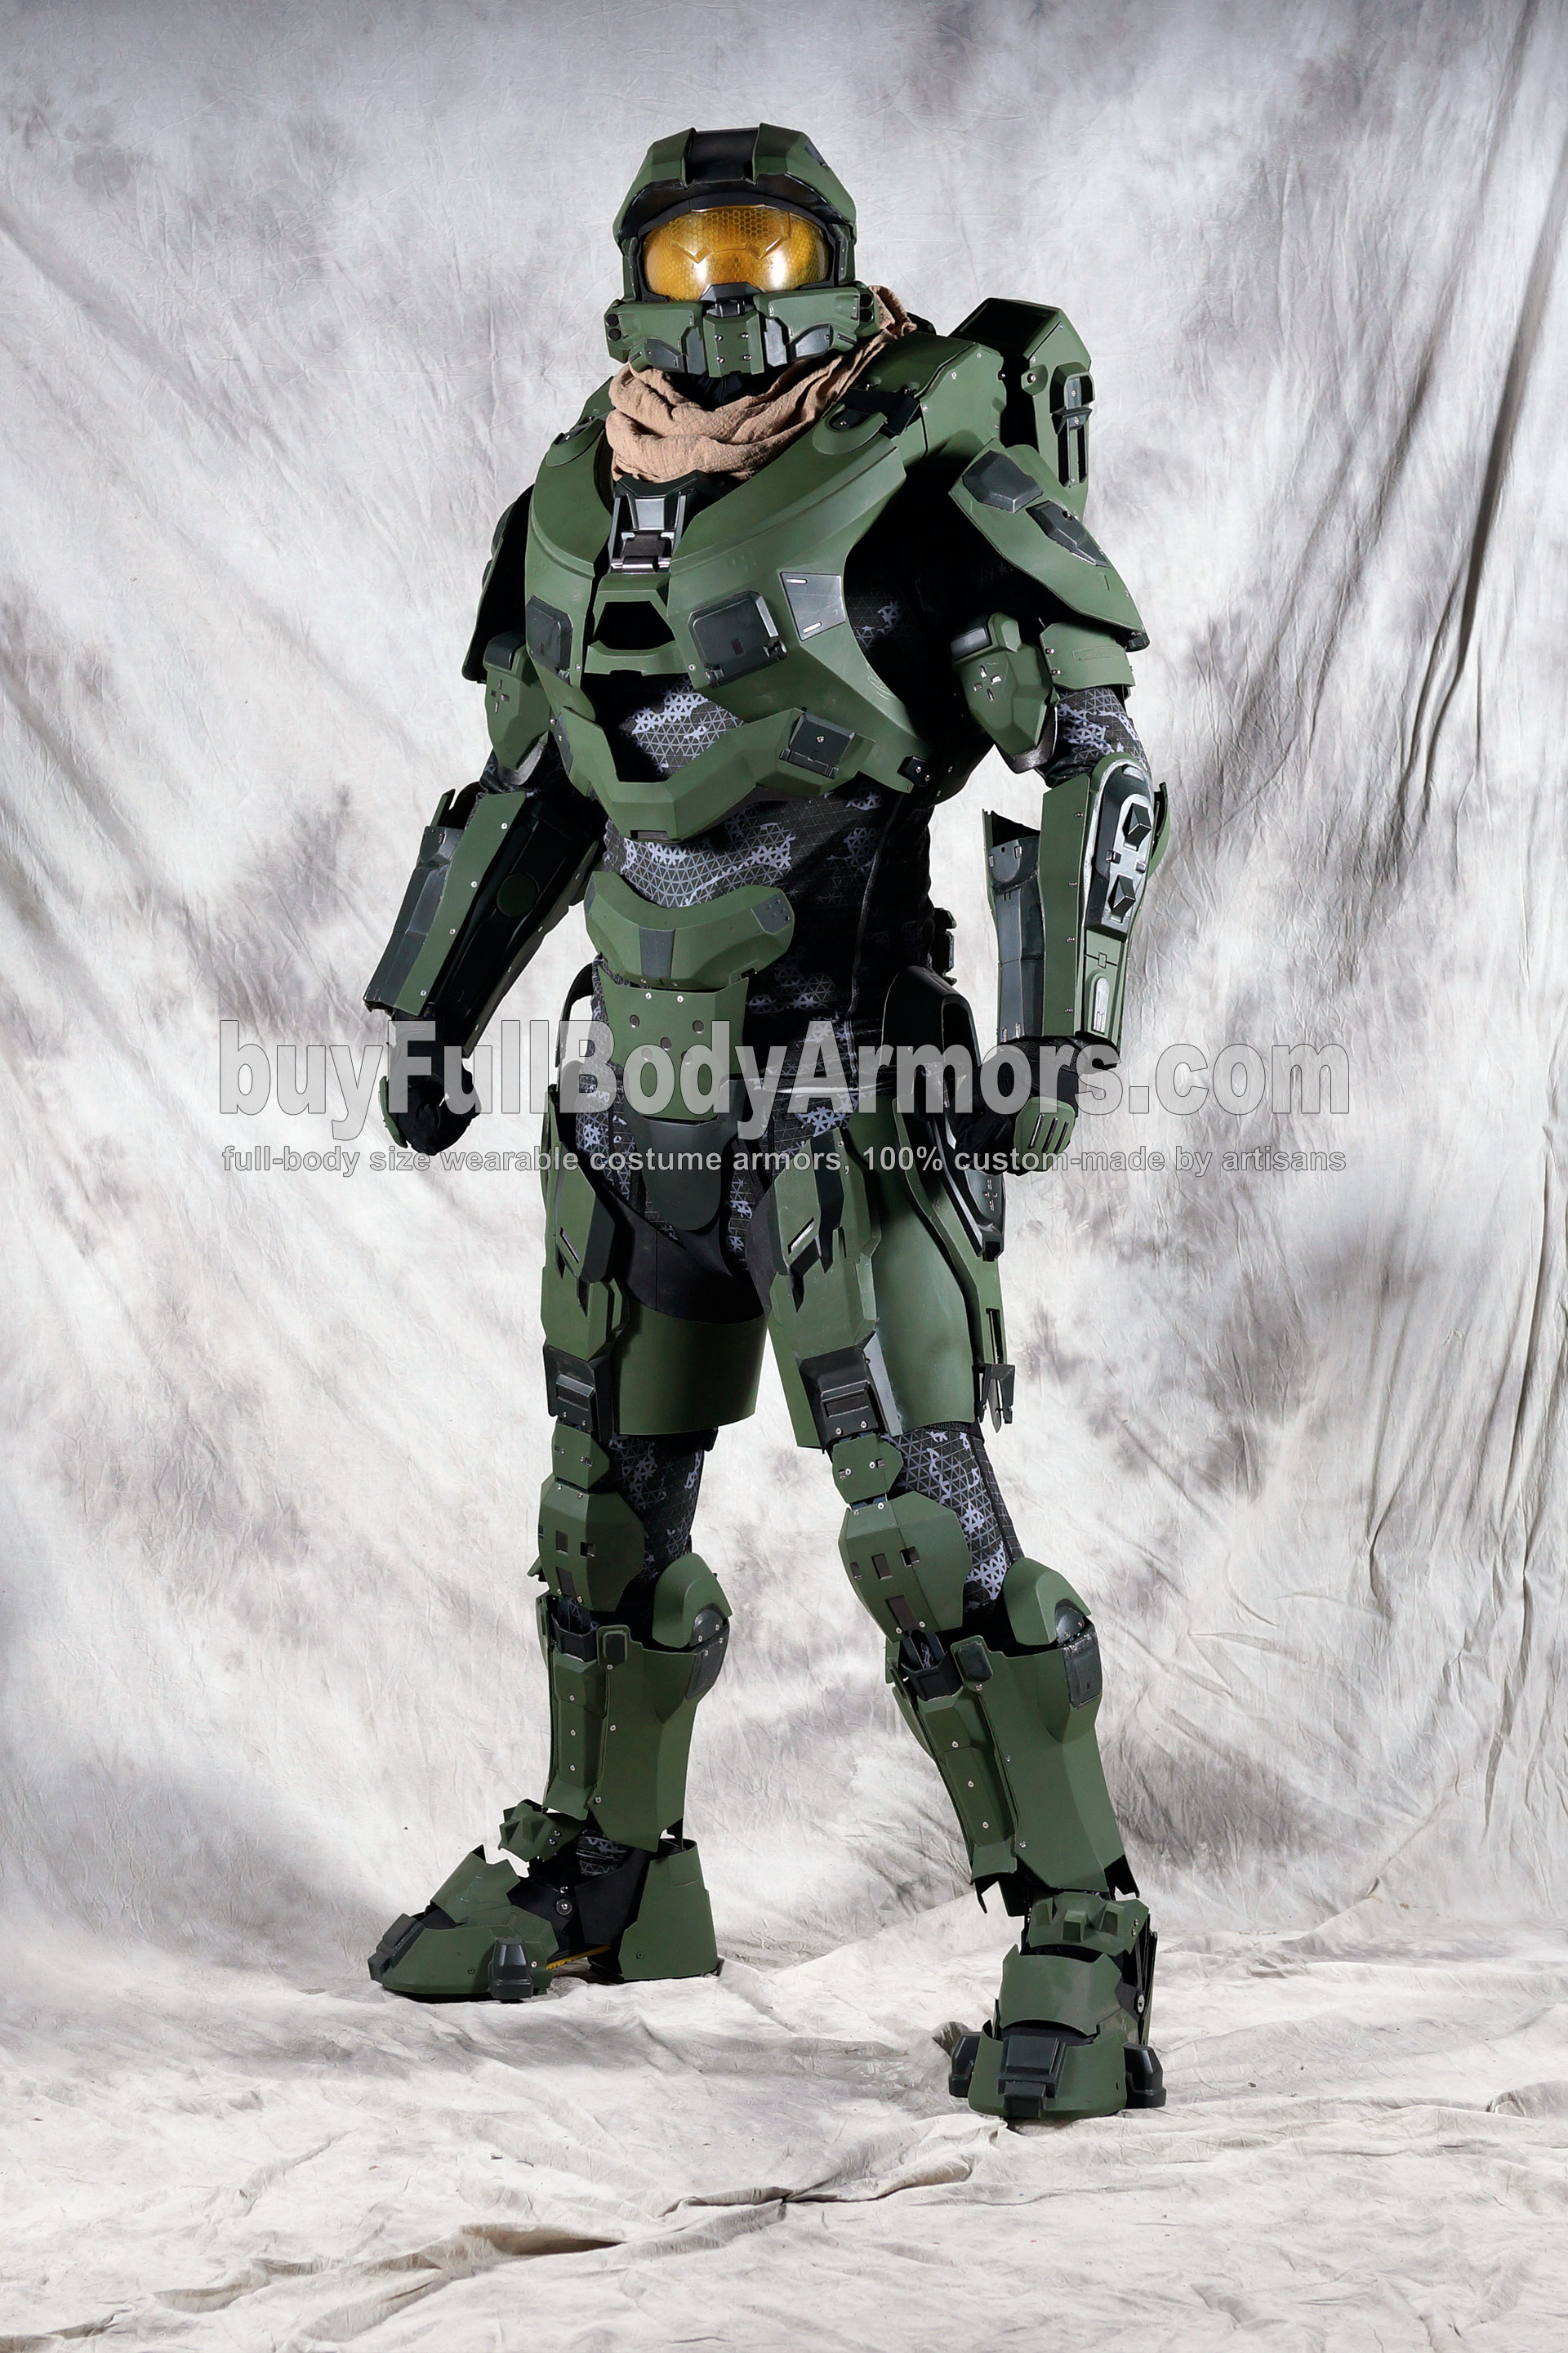 Halo 5 Master Chief Armor Suit Costume 2